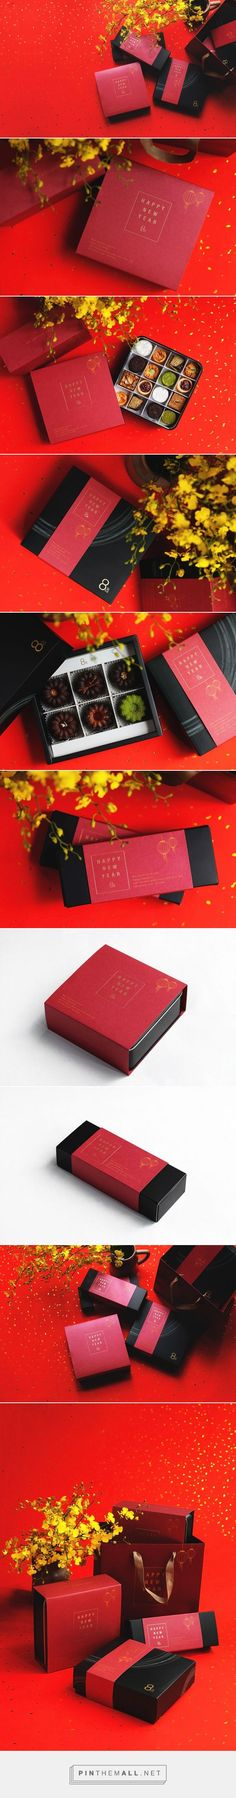 8%ice 2016 #New Year Packaging on Behance by Tan Yu-Chen Taipei, Taiwan curated by Packaging Diva PD.  Tasty Happy #New Year packaging.